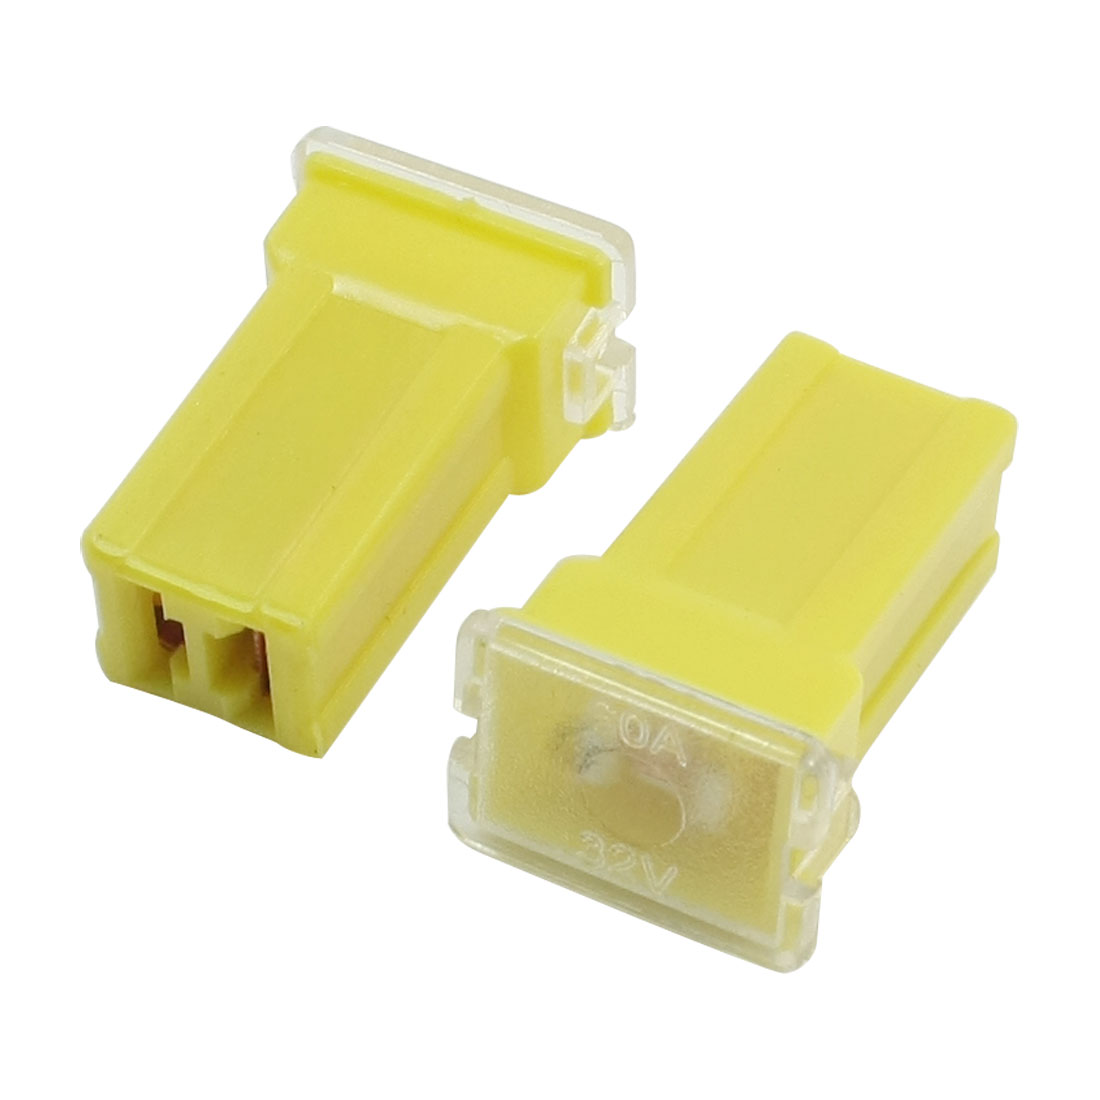 2Pcs Car Vehicle Automotive 2 Terminals Female PAL Cartridge Circuit Breaker Fuse Yellow DC32V 60A